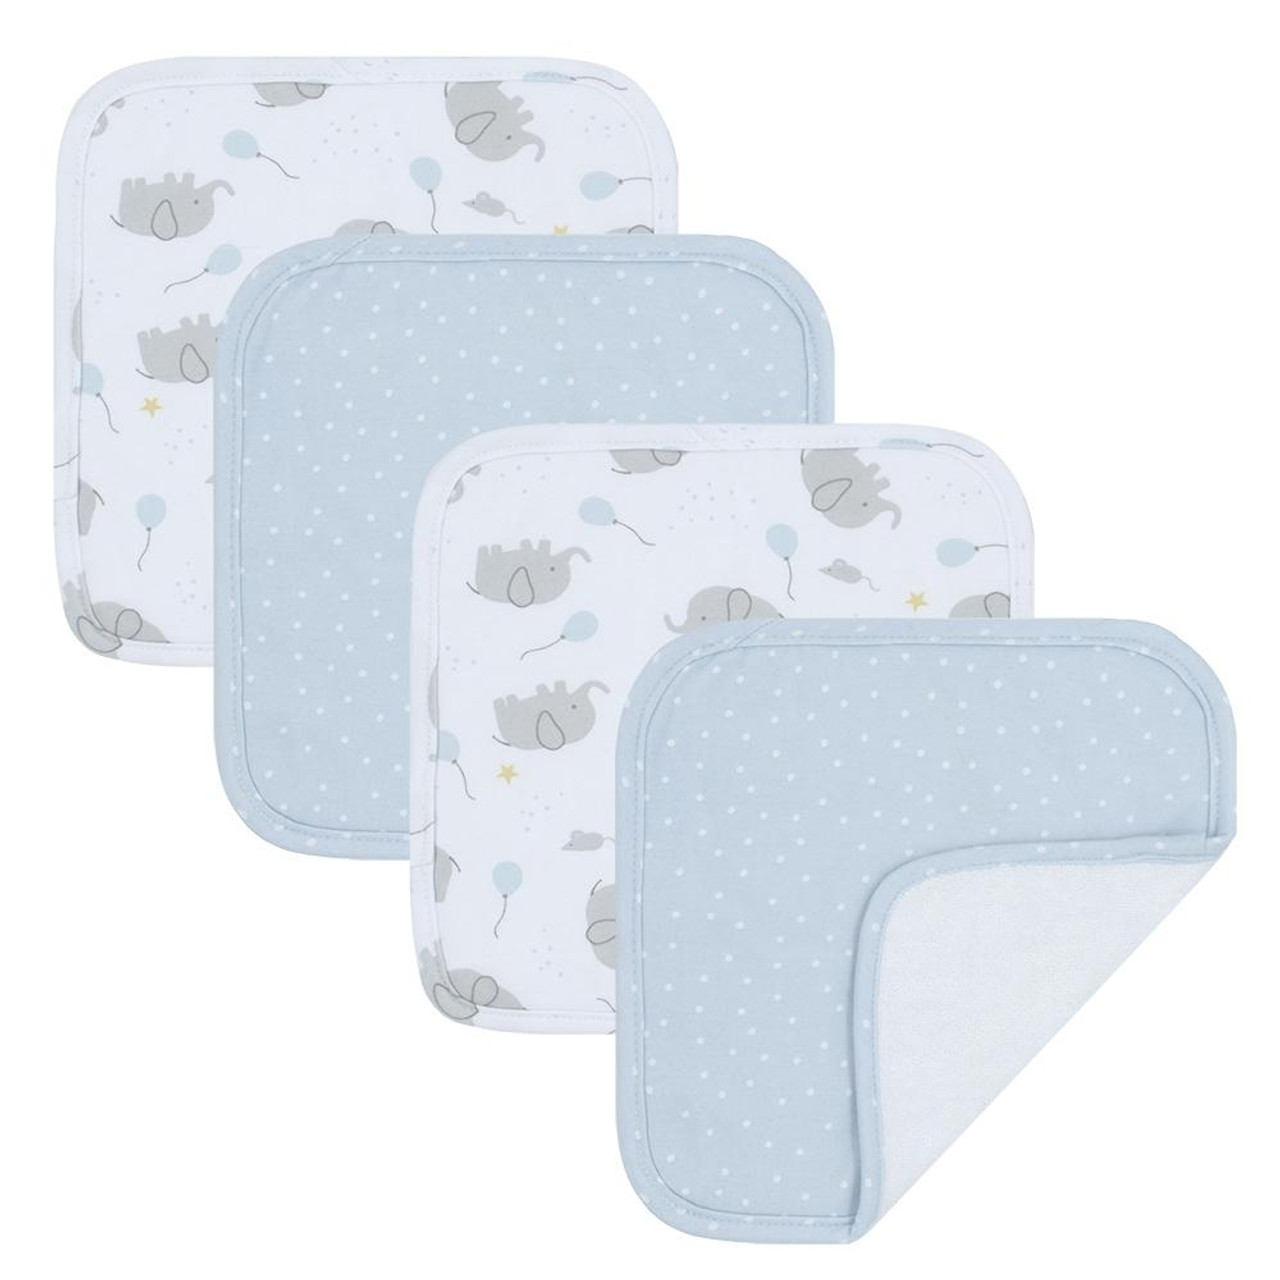 Living Textiles Cotton Towelling Jersey 4pk Face Wash Cloths- MASON Living Textiles Cotton Towelling Jersey 4pk Face Wash Cloths - SWAN Add a bit if luxury to baby's day with the 4pk of washcloths from Living Textiles. These deluxe  washcloths are perfect for everyday use during bath time or on the go.